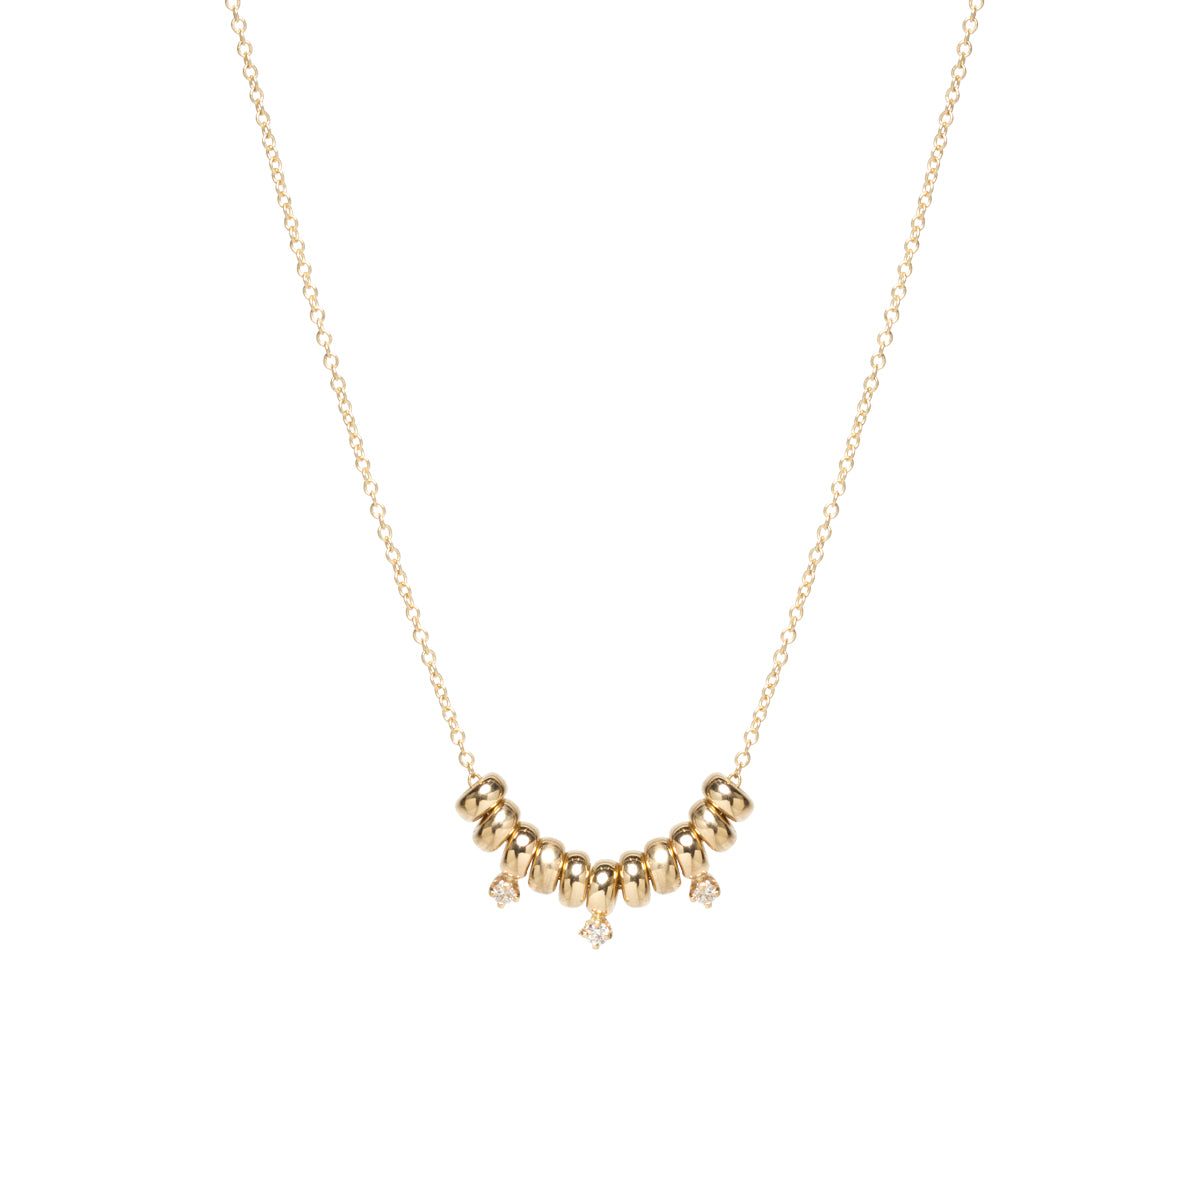 14k small rondelle and prong diamond necklace